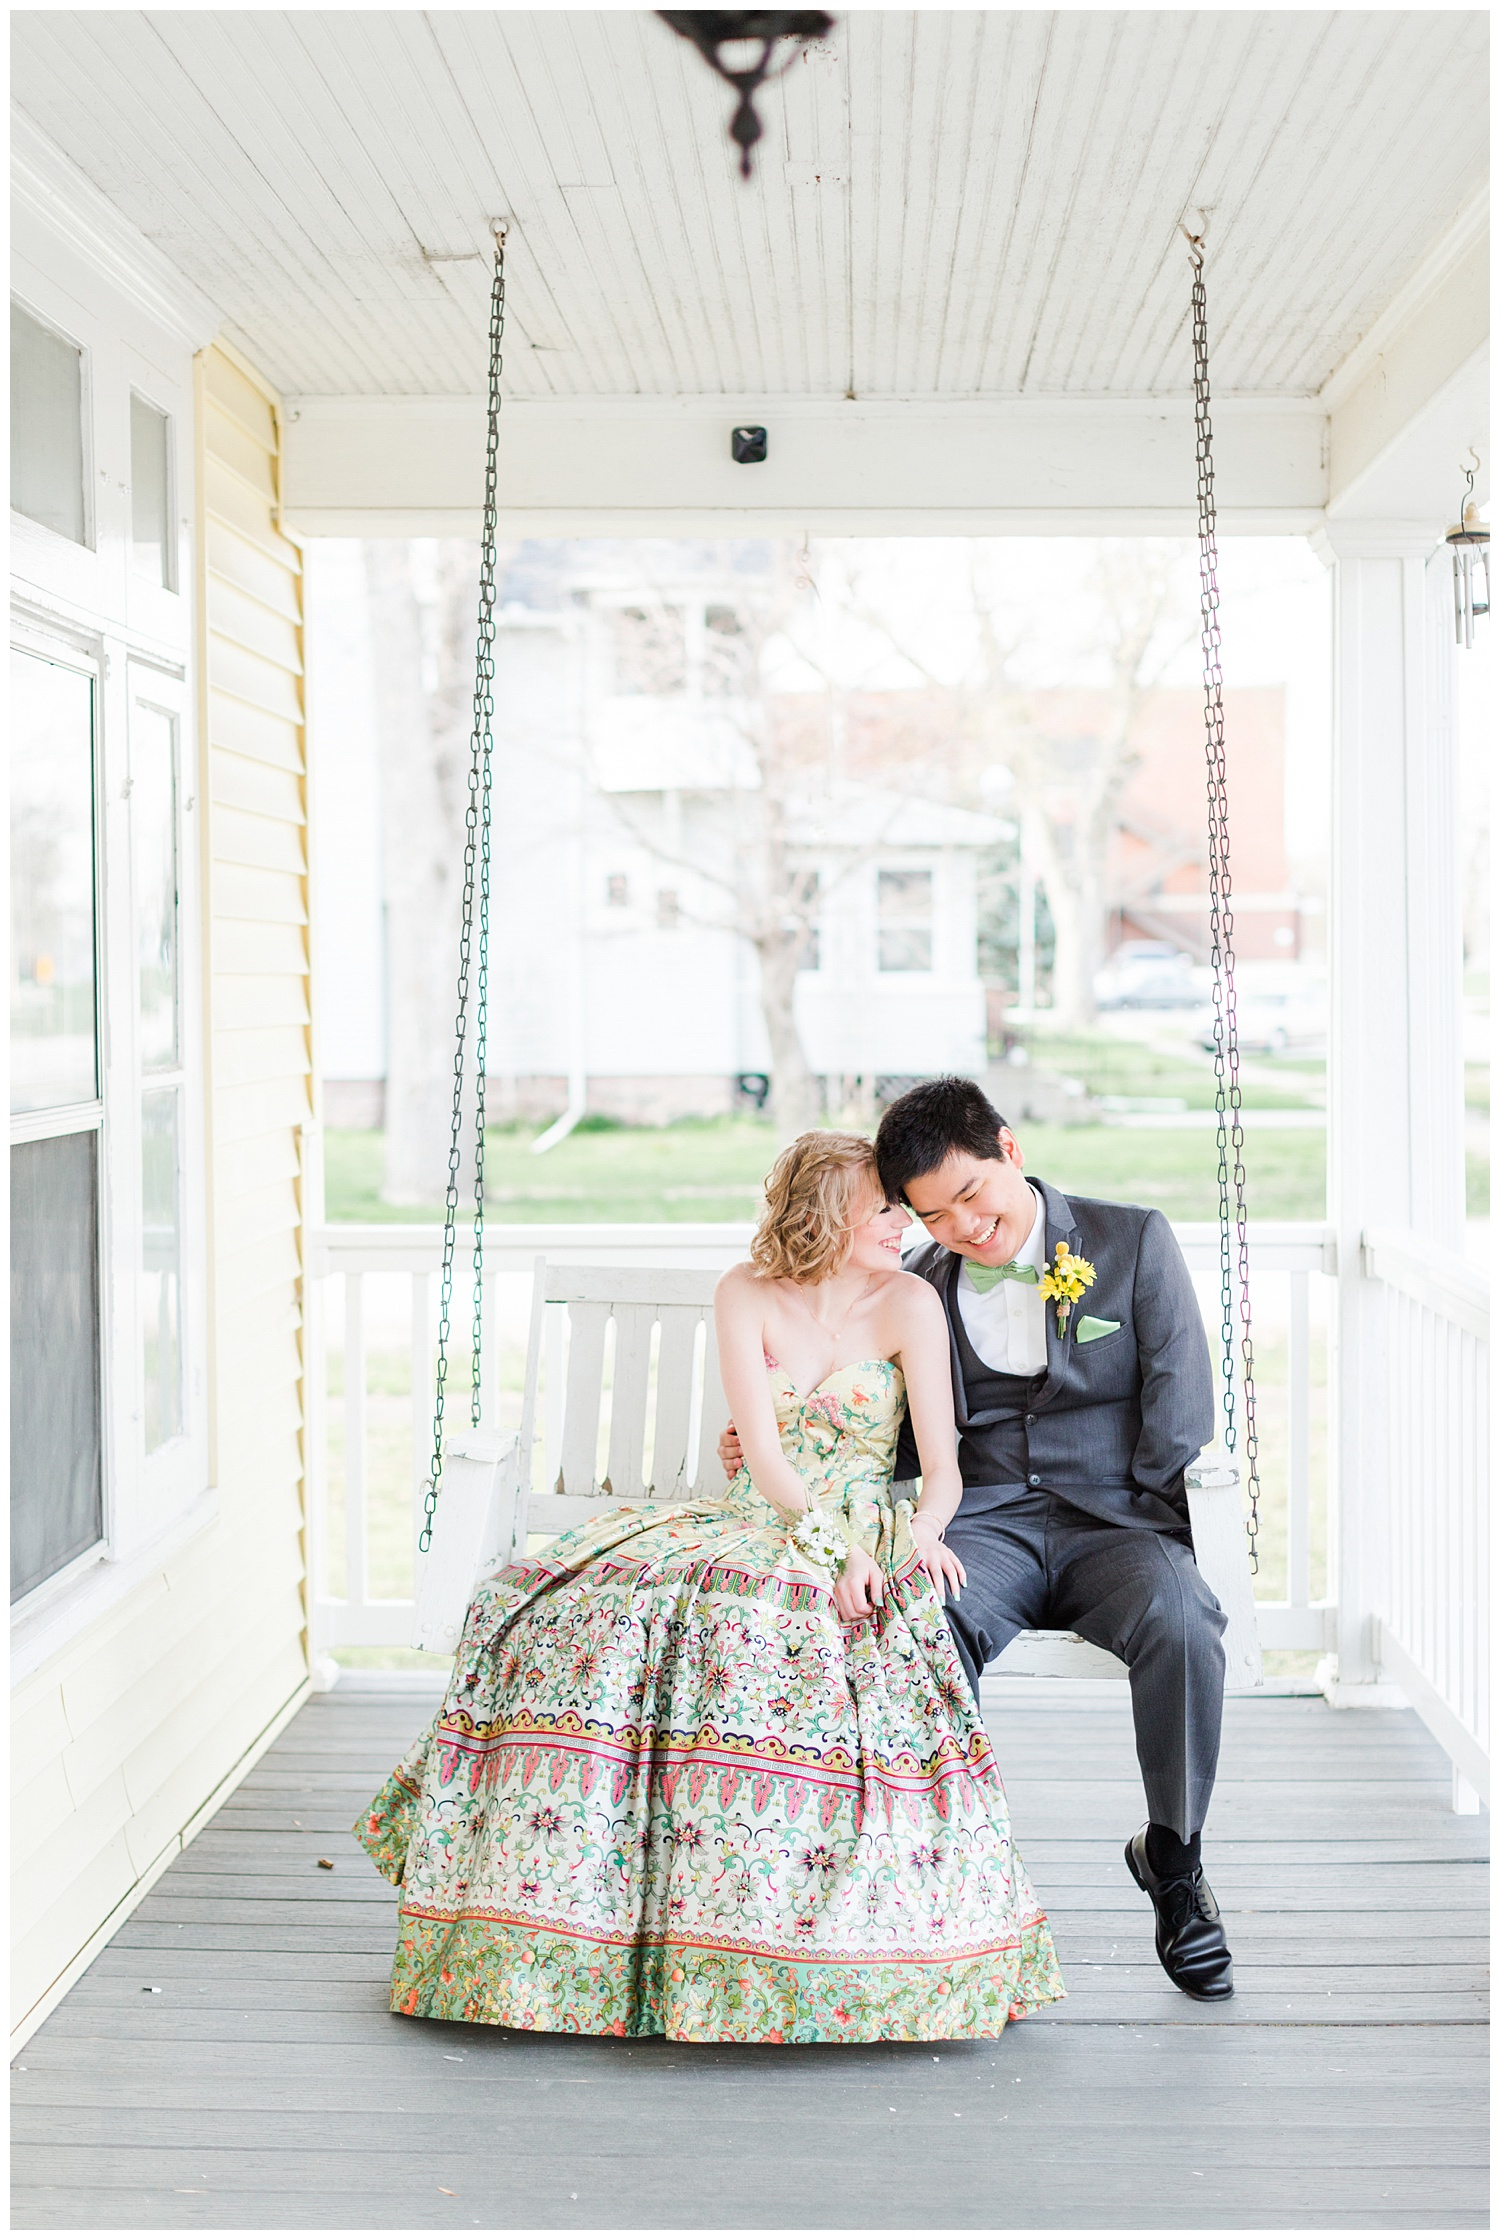 Sam and Michaela snuggle together on a white porch swing as they wait to attend 2021 Prom | CB Studio